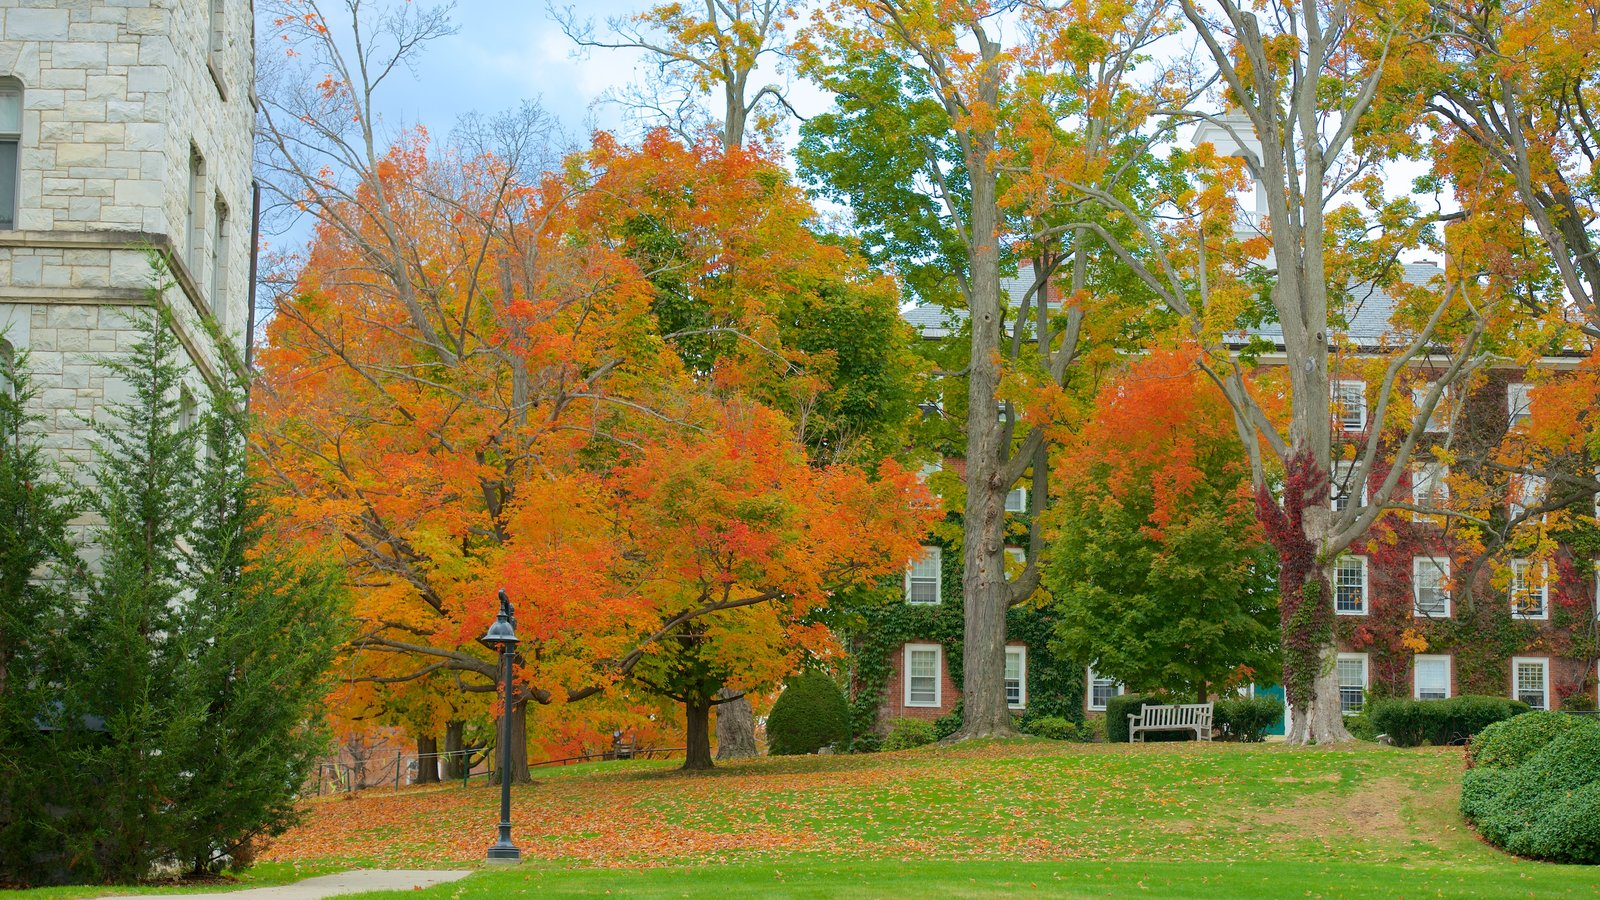 Williamstown featuring a park and autumn leaves